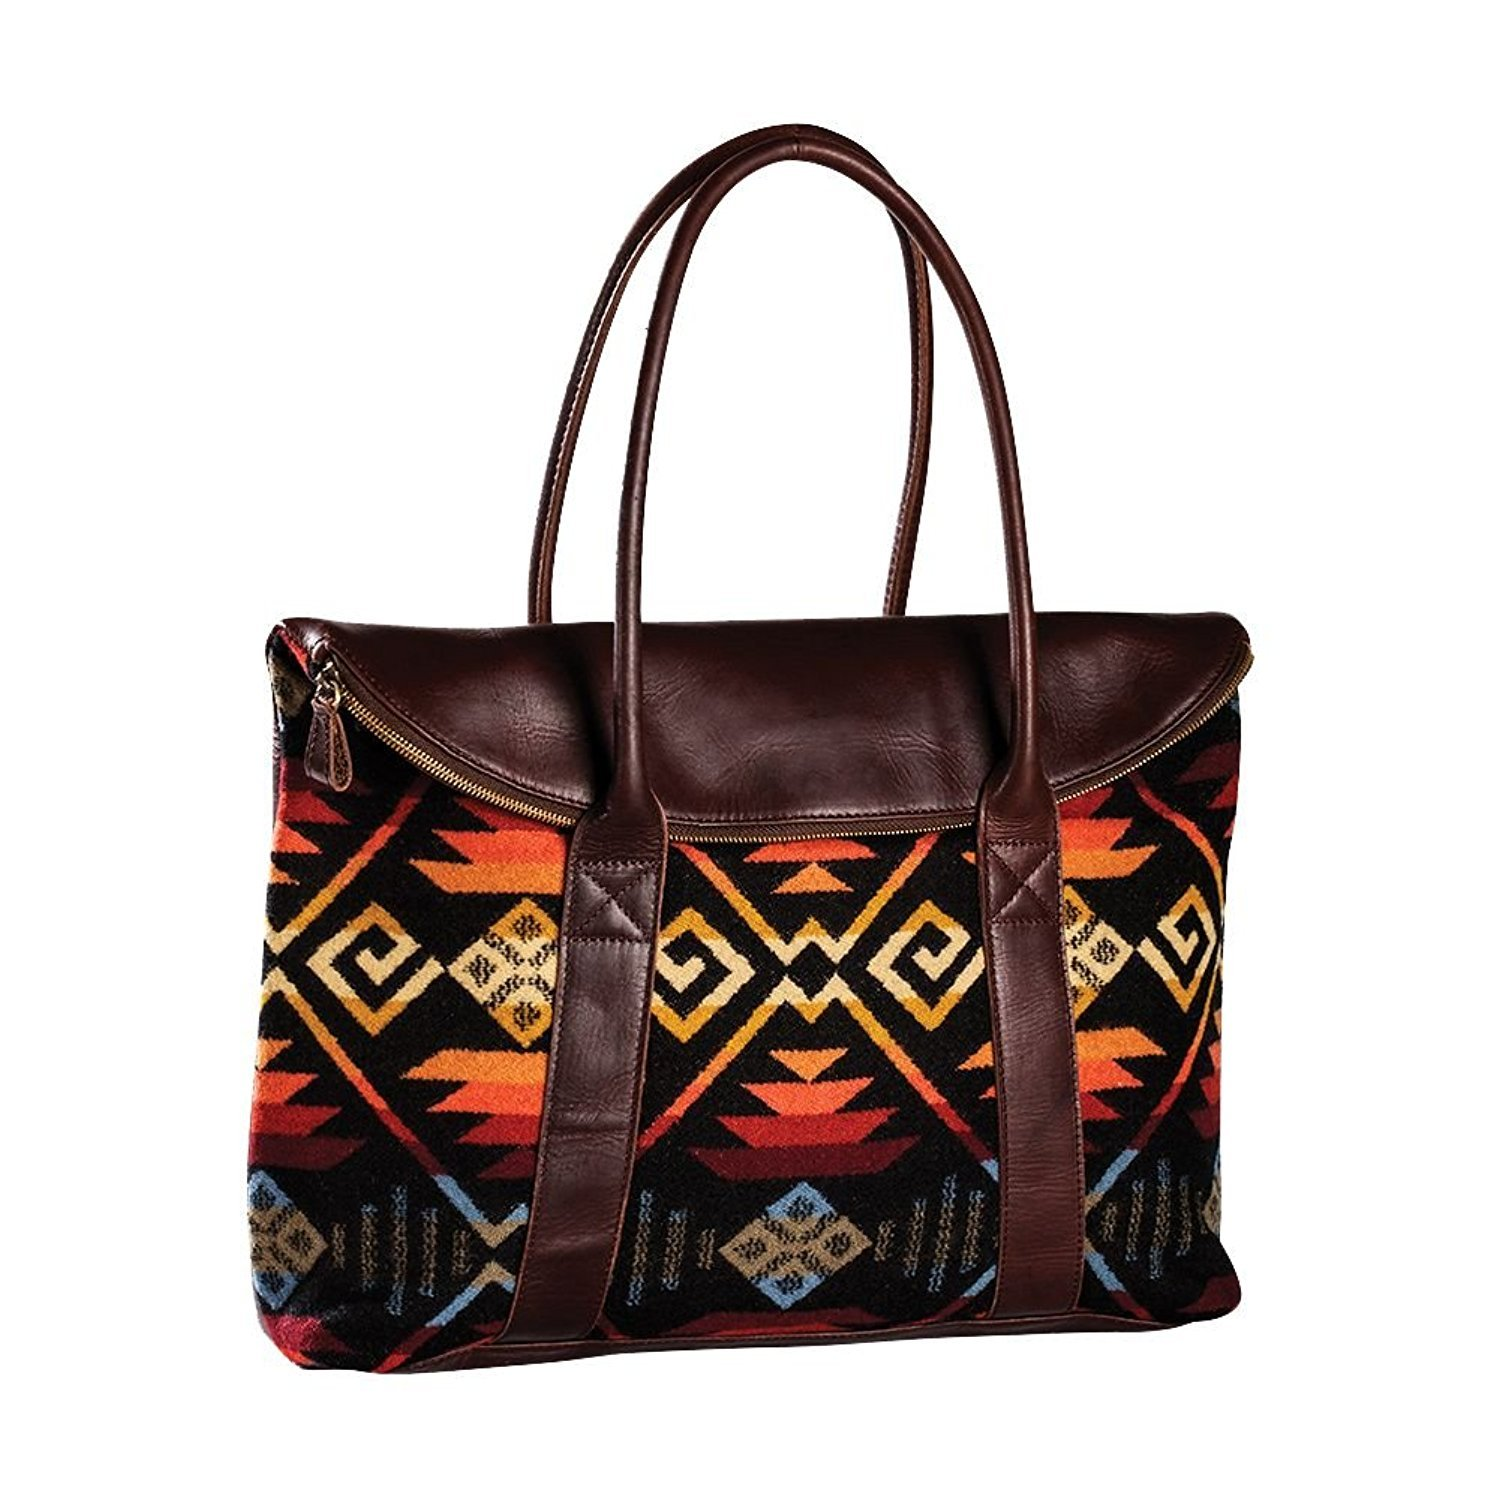 Pendleton Black Coyote Butte Leather Travel Tote | Carry All | Bag